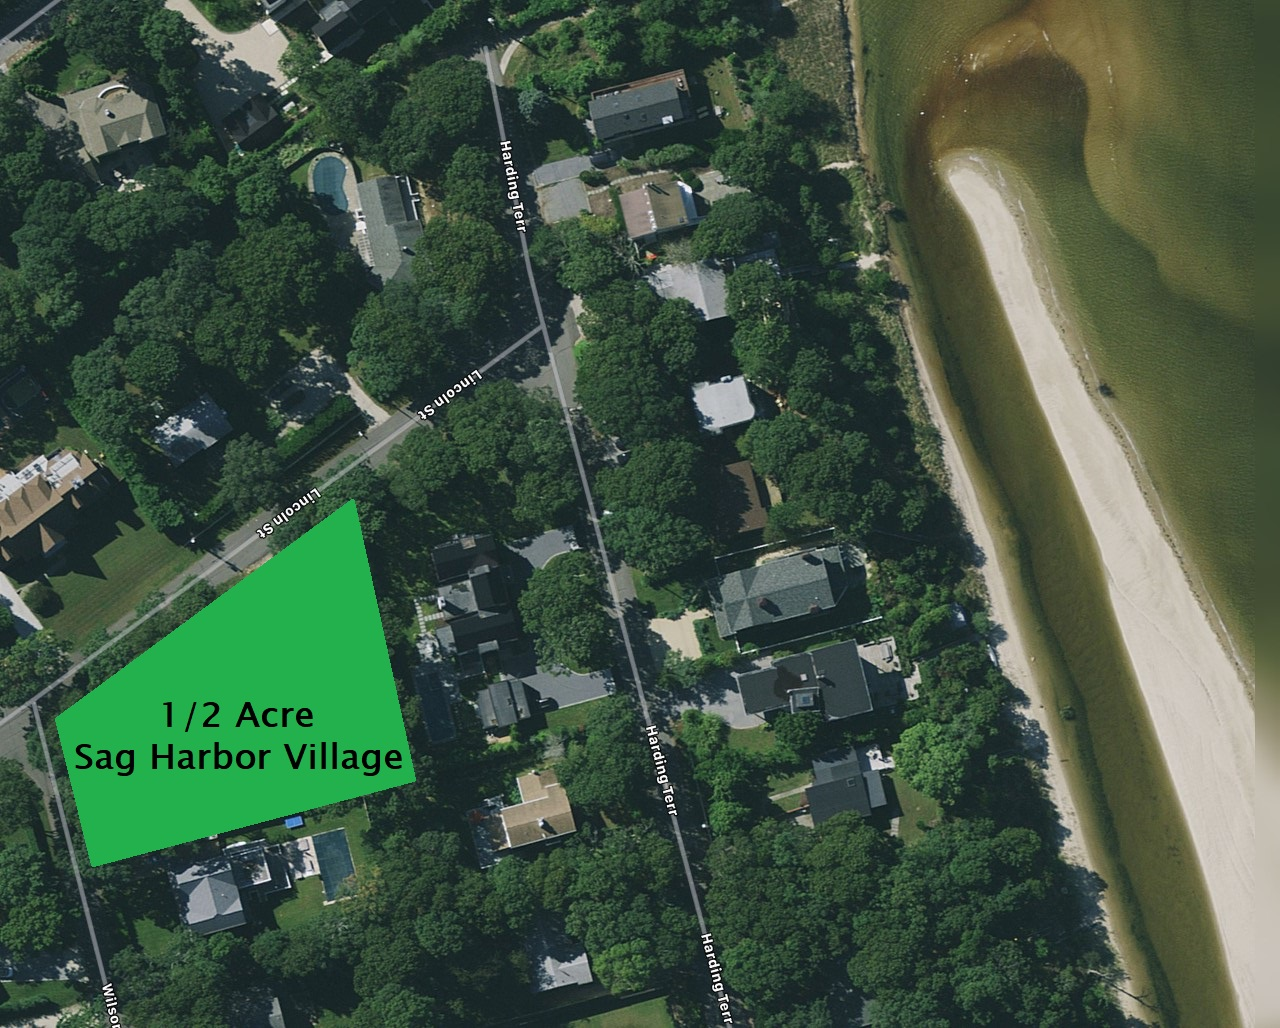 1. Land for Sale at Sag Harbor Village, Sag Harbor, NY 11963